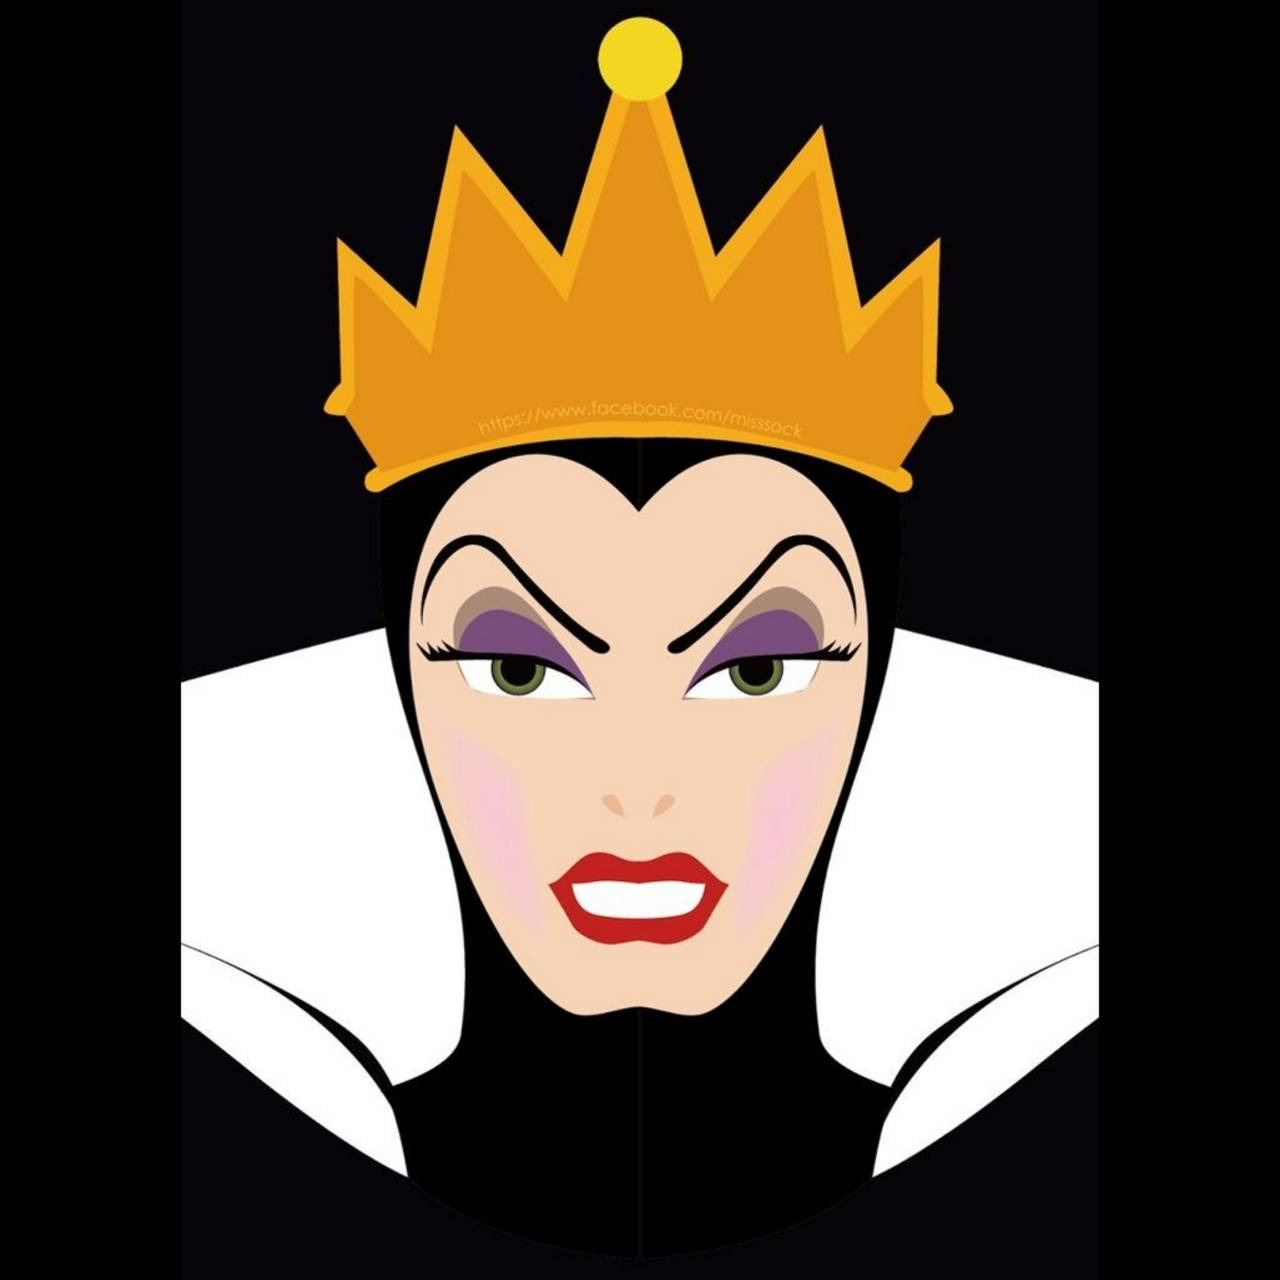 The Evil Queen Wallpaper By Beasty316 59 Free On Zedge Queen of hearts crown halloween headdress evil queen crown alice cosplay party. the evil queen wallpaper by beasty316